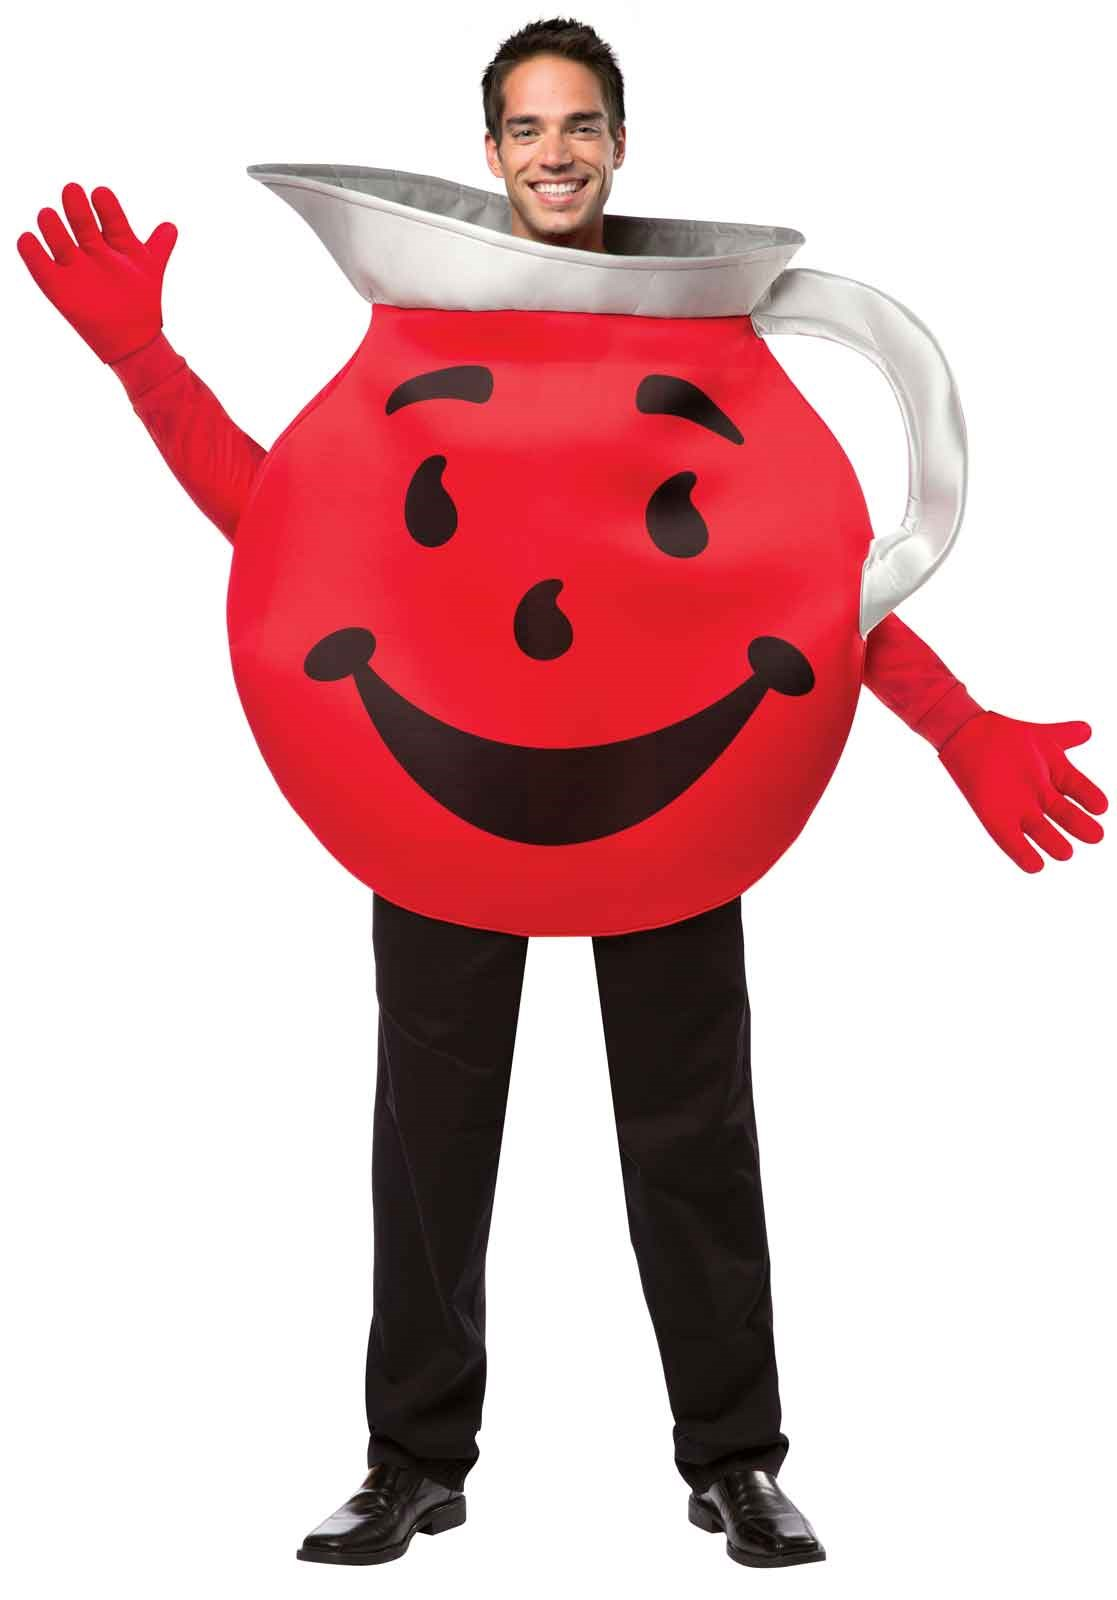 a description of the process of making a kool aid Kool-aid got its start in the 1920s as fruit smack, a liquid drink mix  nebraska ( which later went on to make kool-aid its state soft drink in.